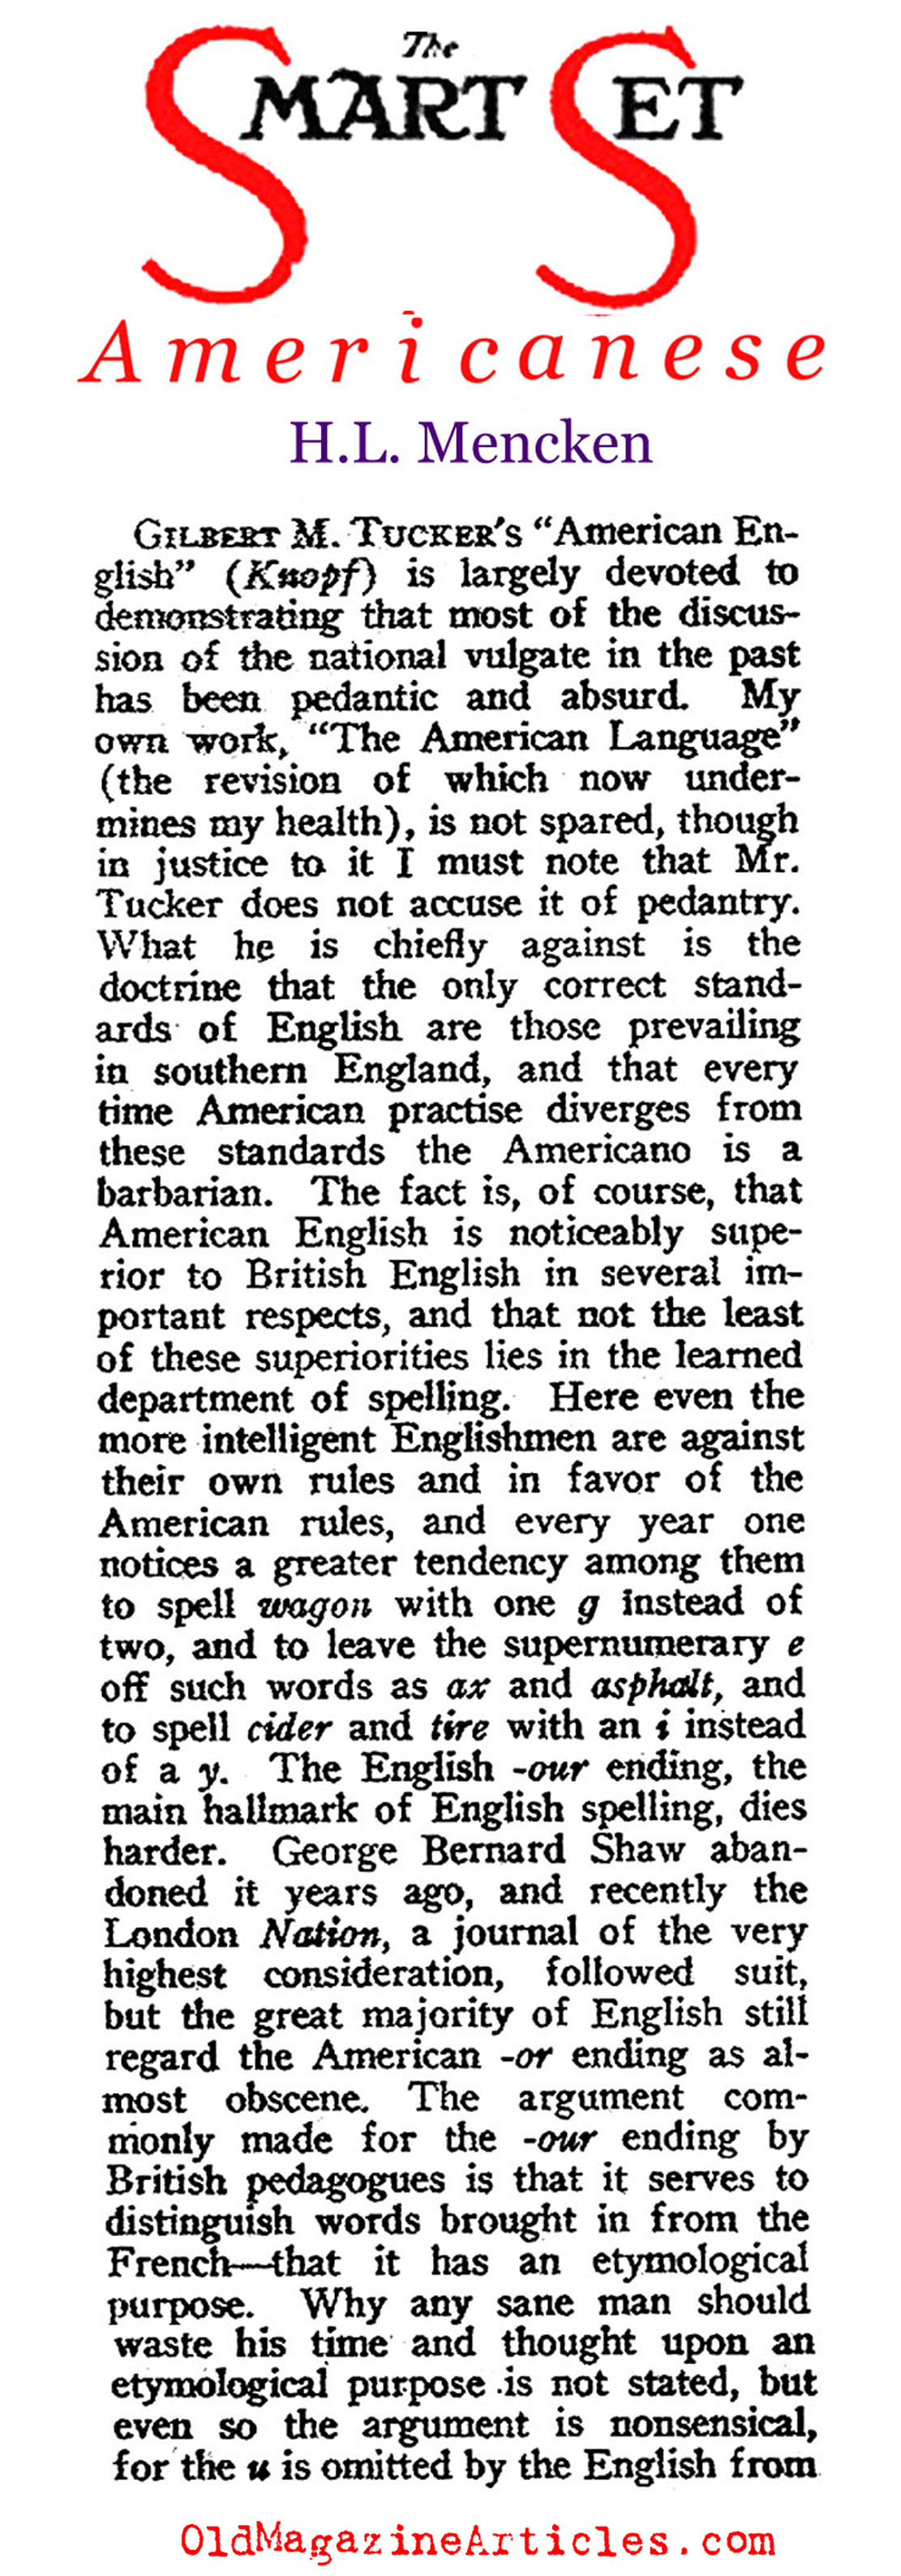 H.L. Mencken on American English (The Smart Set, 1921)